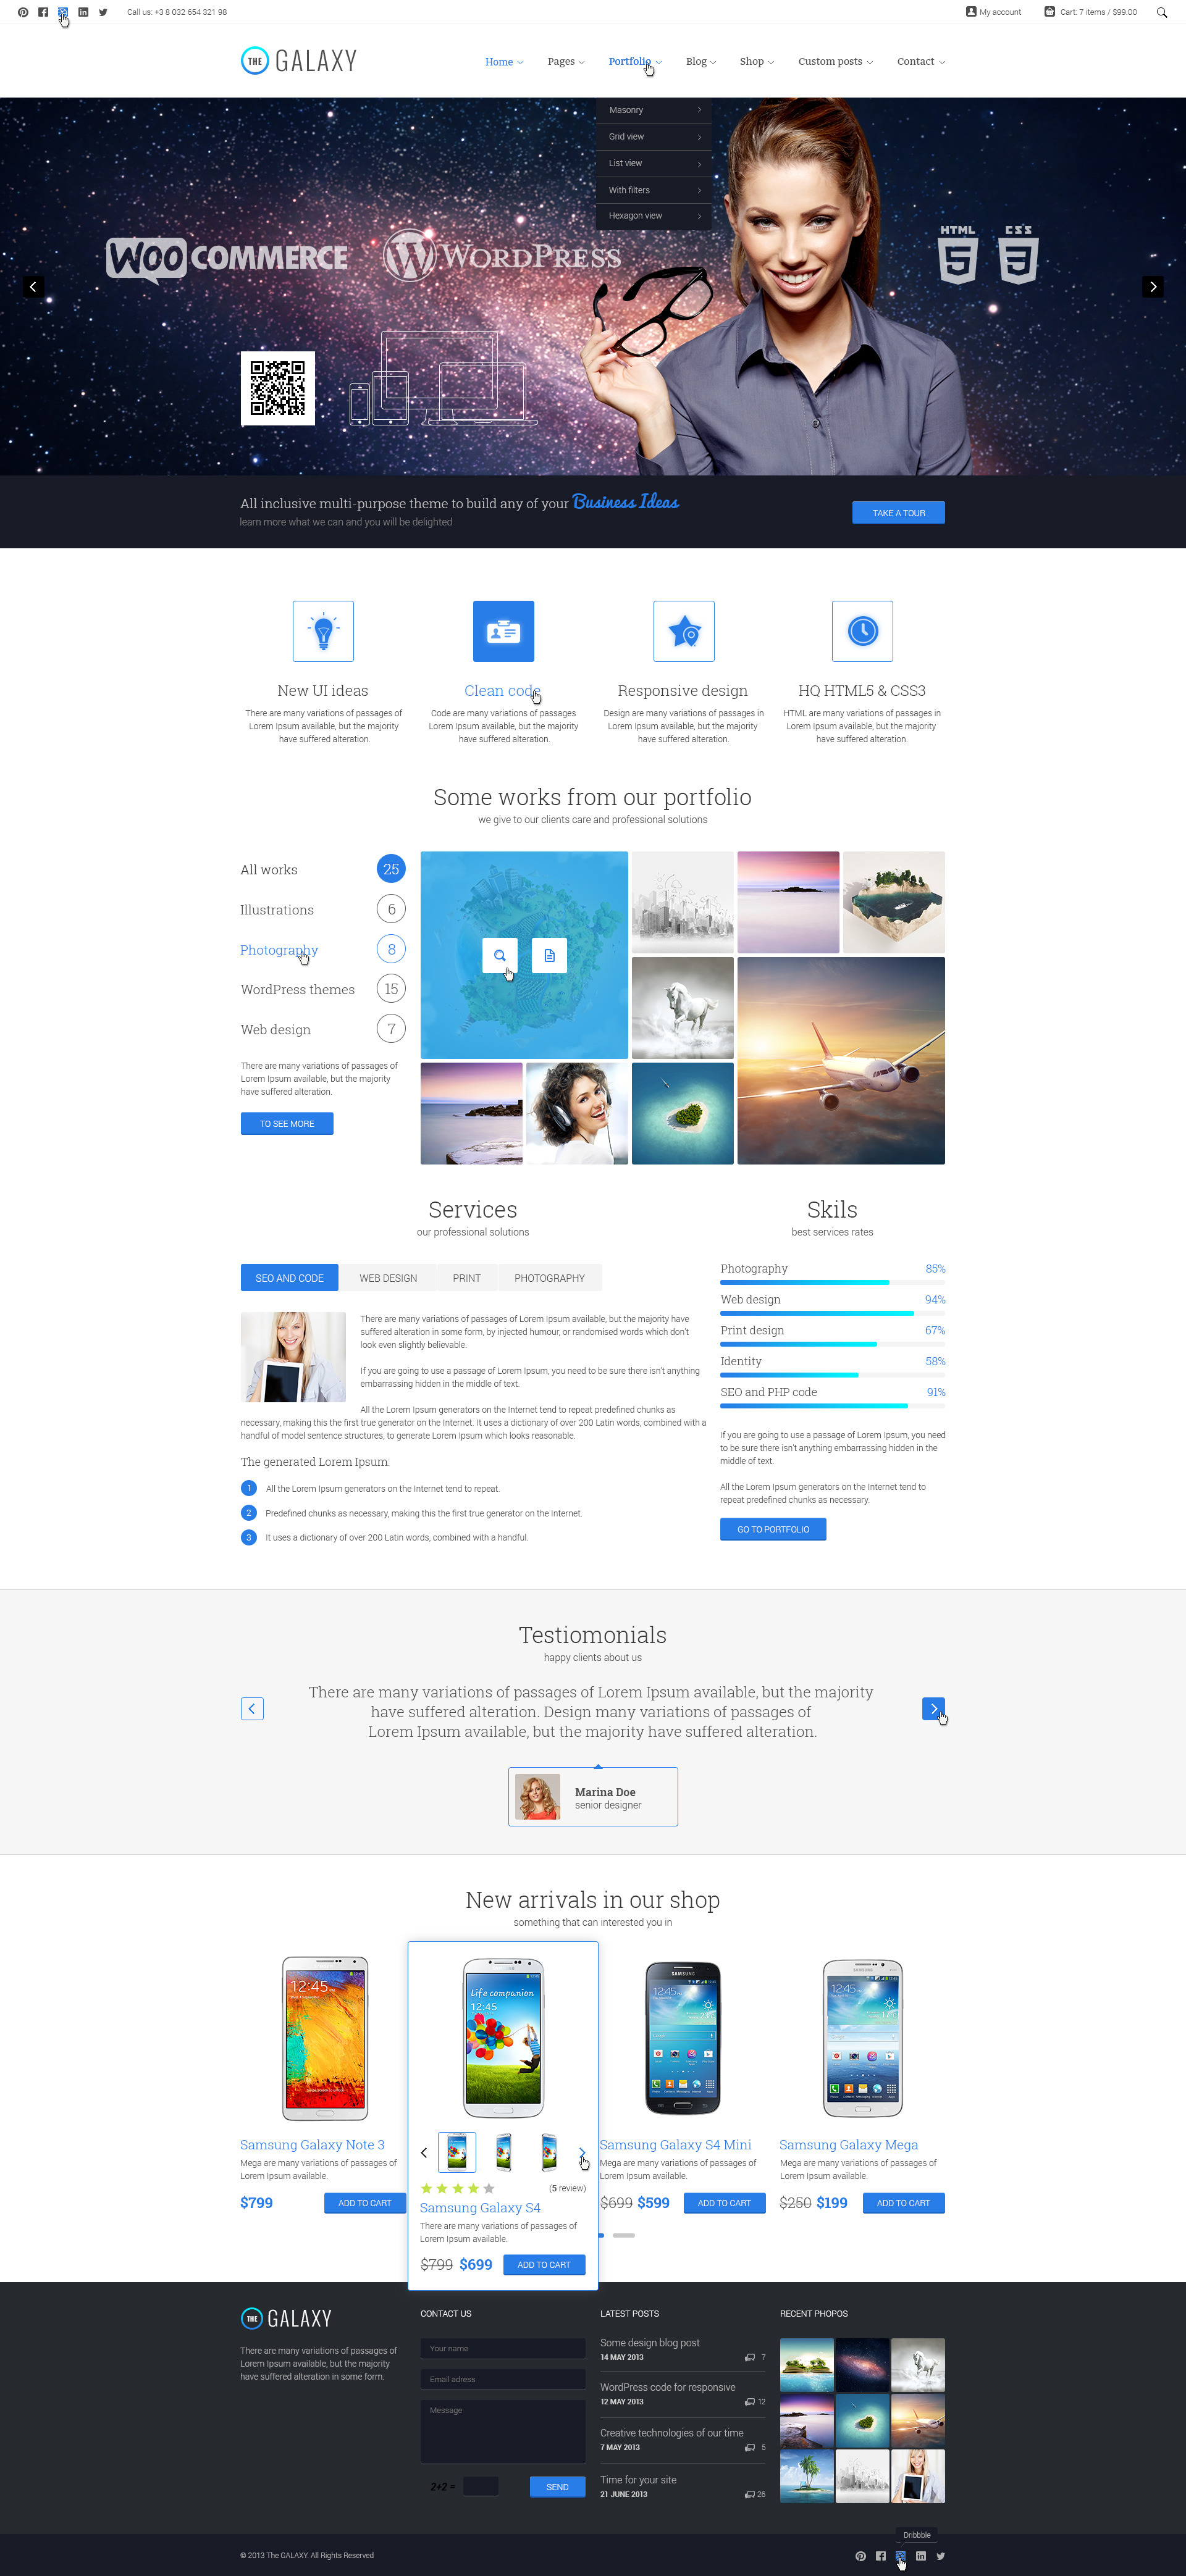 The GALAXY - Responsive Multi-Purpose PSD Theme